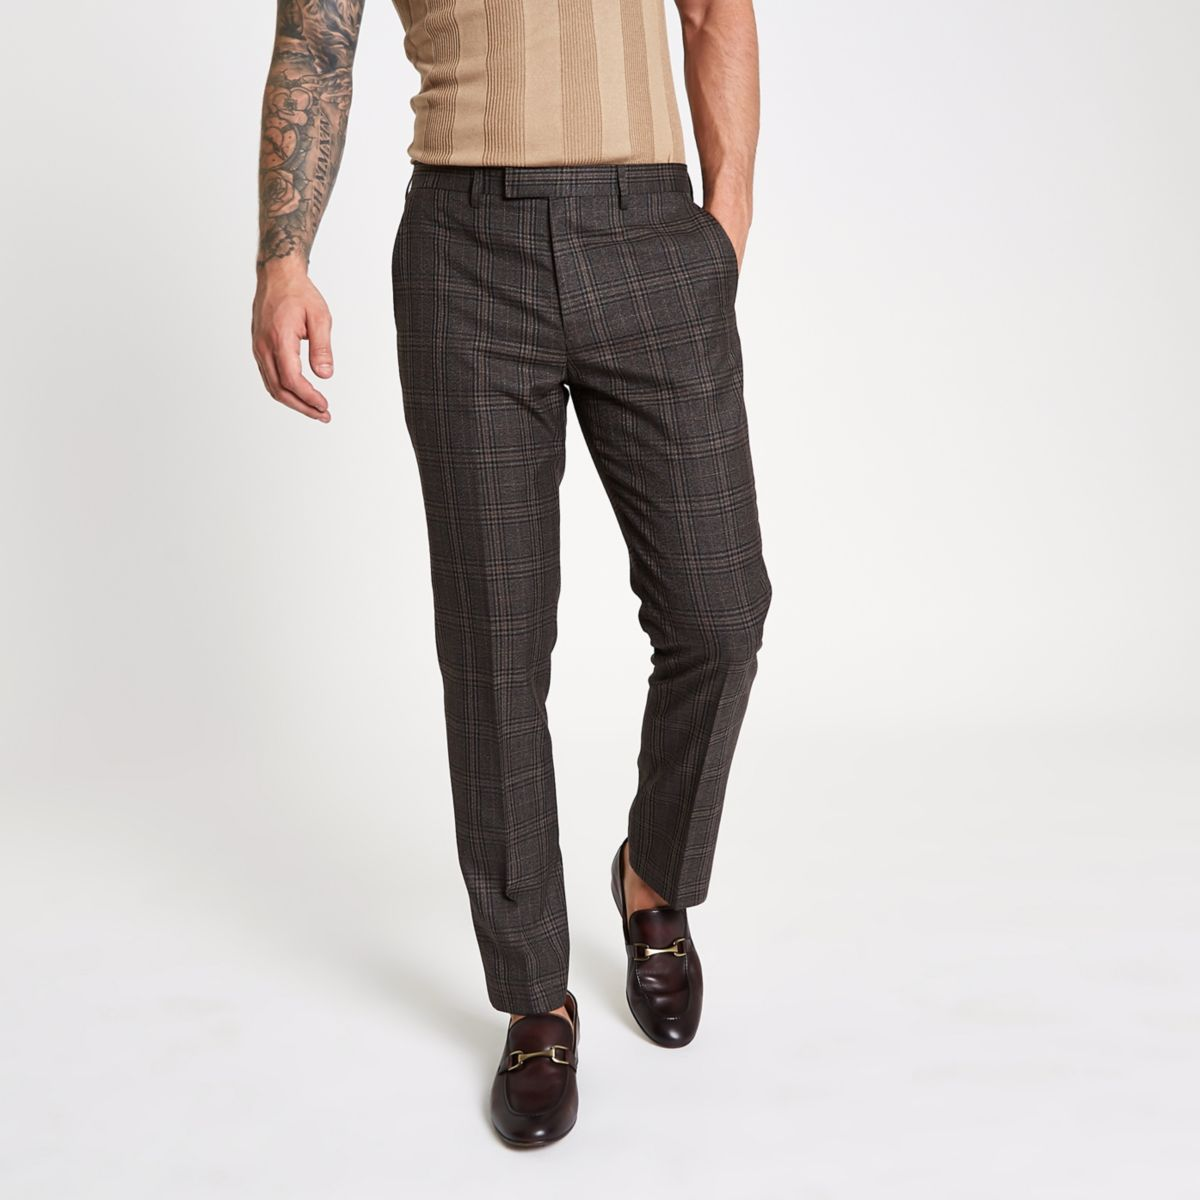 Brown Check Slim Fit Suit Pants by River Island